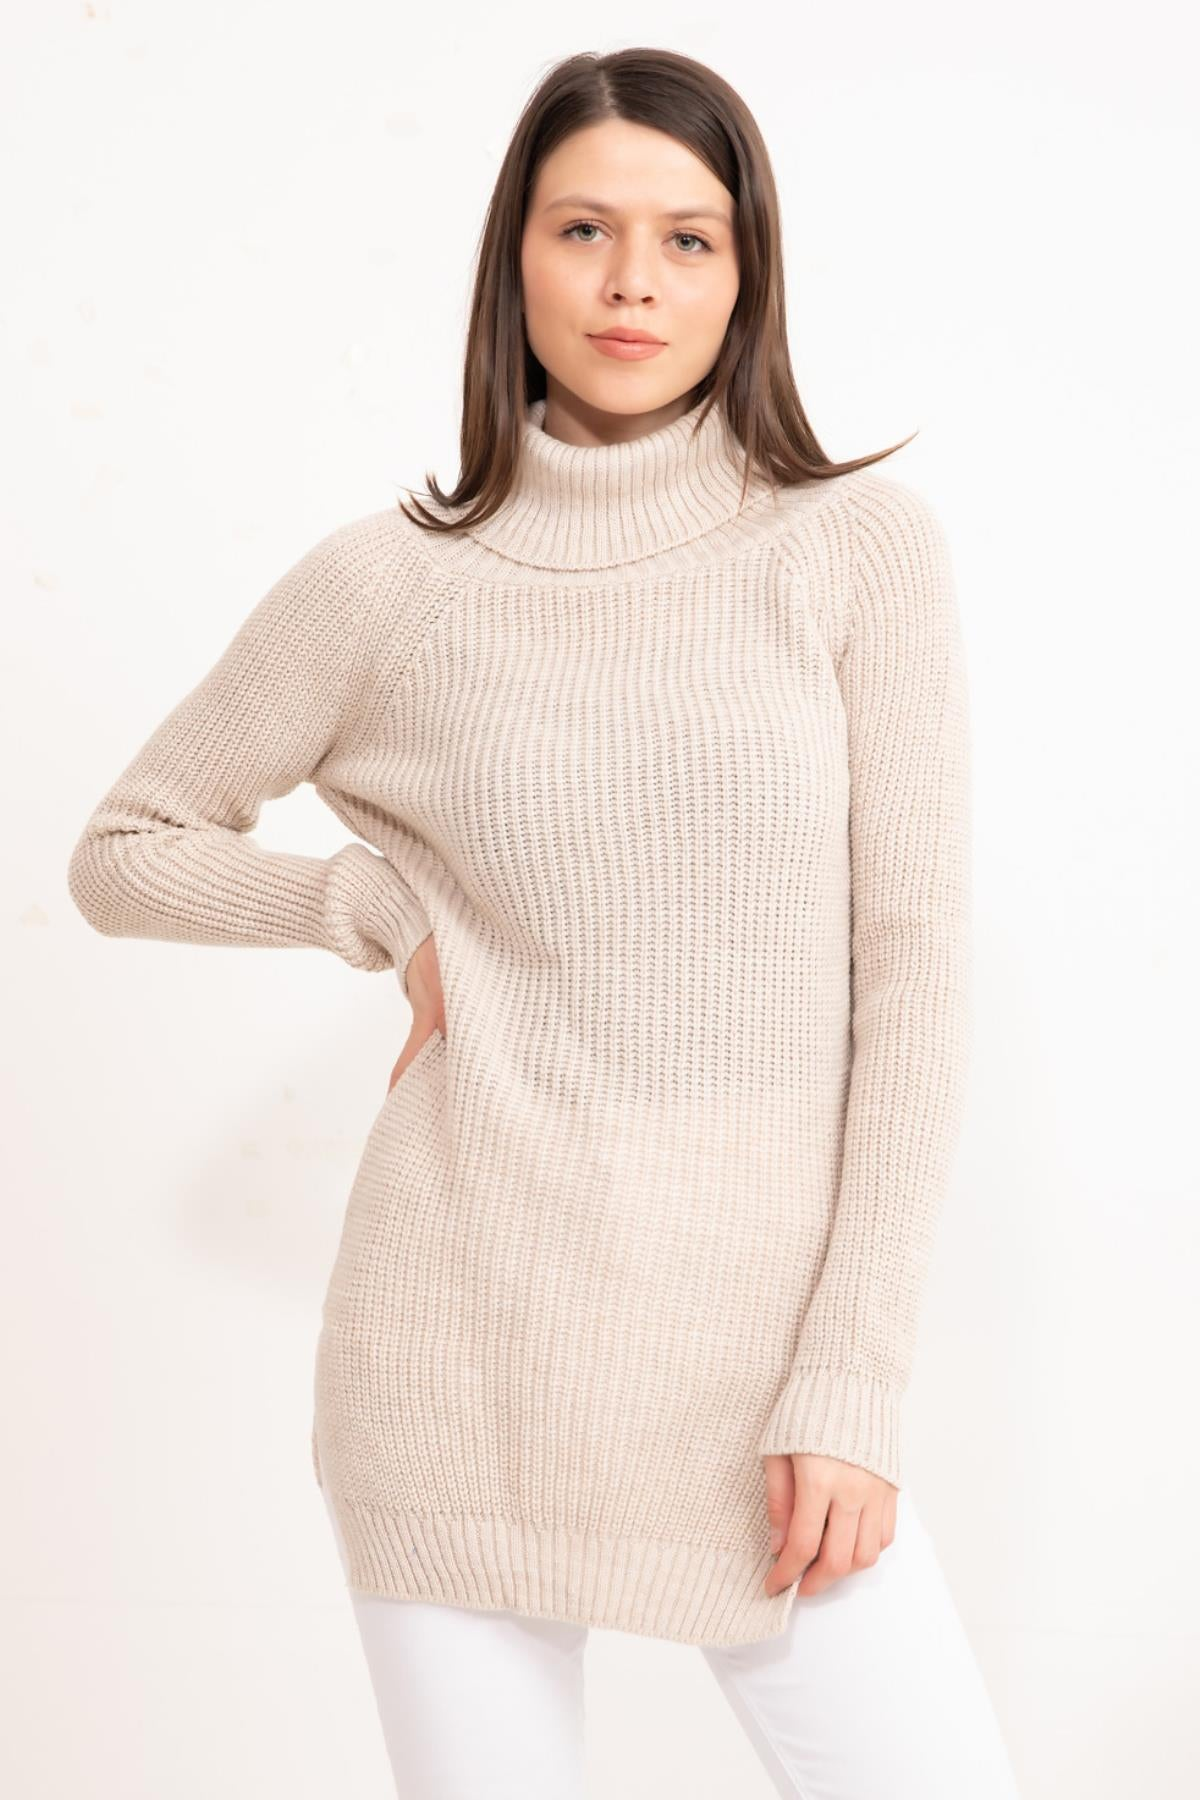 Stone Turtleneck Knitwear Tunic